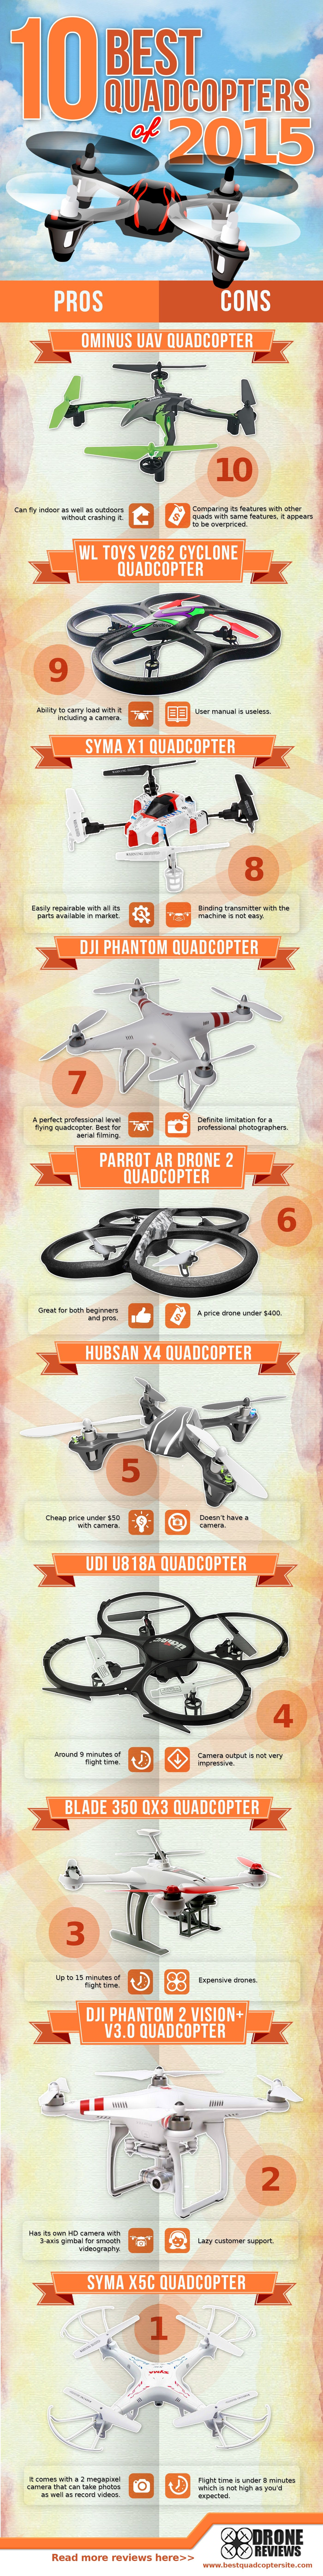 Drones Quads Or Whatever Else One Calls Them Flying Quadcopters Can Be A Great Hobby The Excitement Of Flying A Machine M Drone Drone Technology Quadcopter